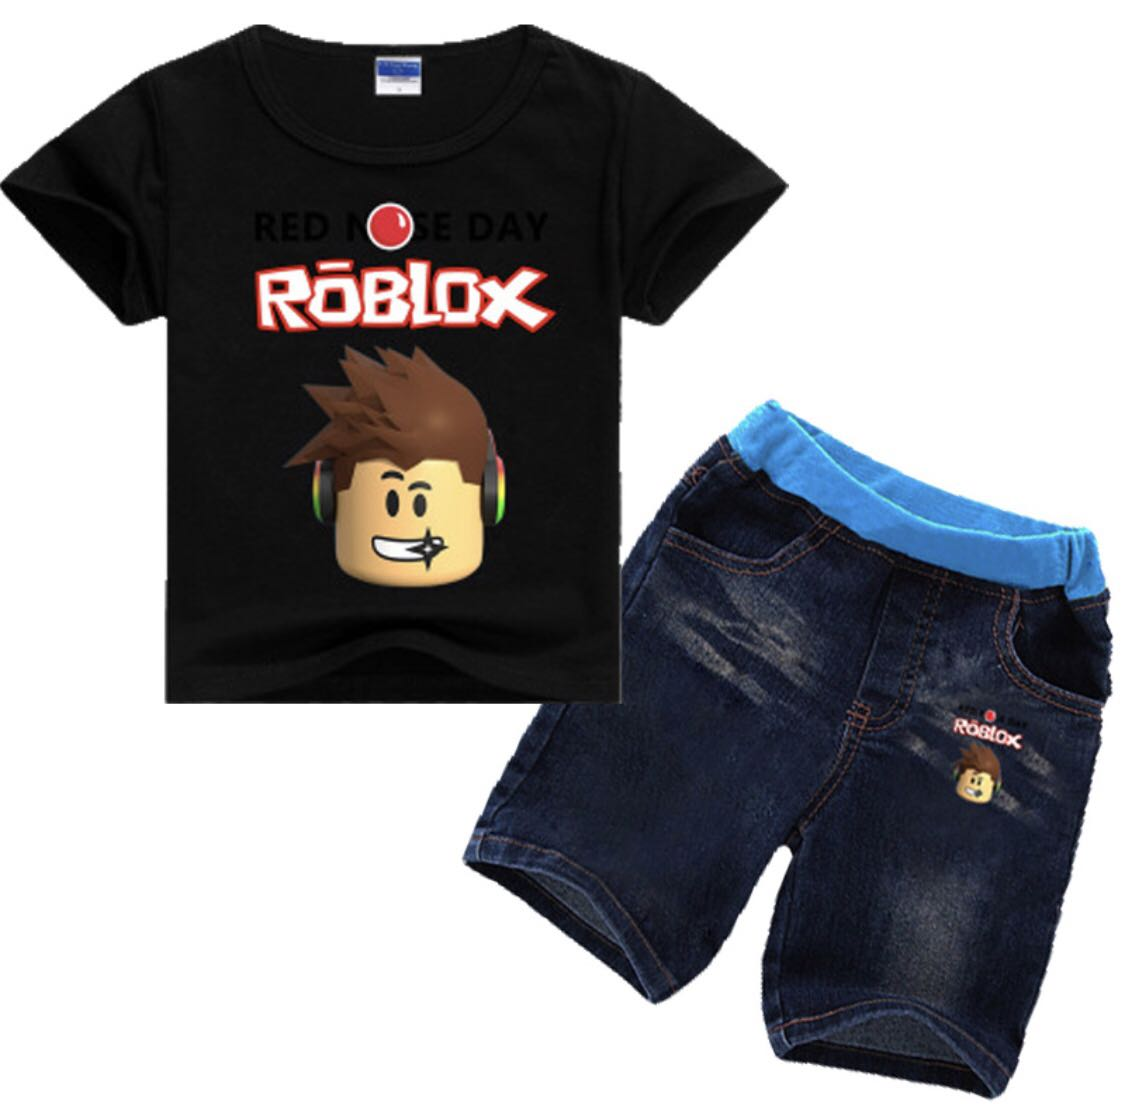 New Roblox shirt boys sizes XS S M L XL Roblox shirt boys